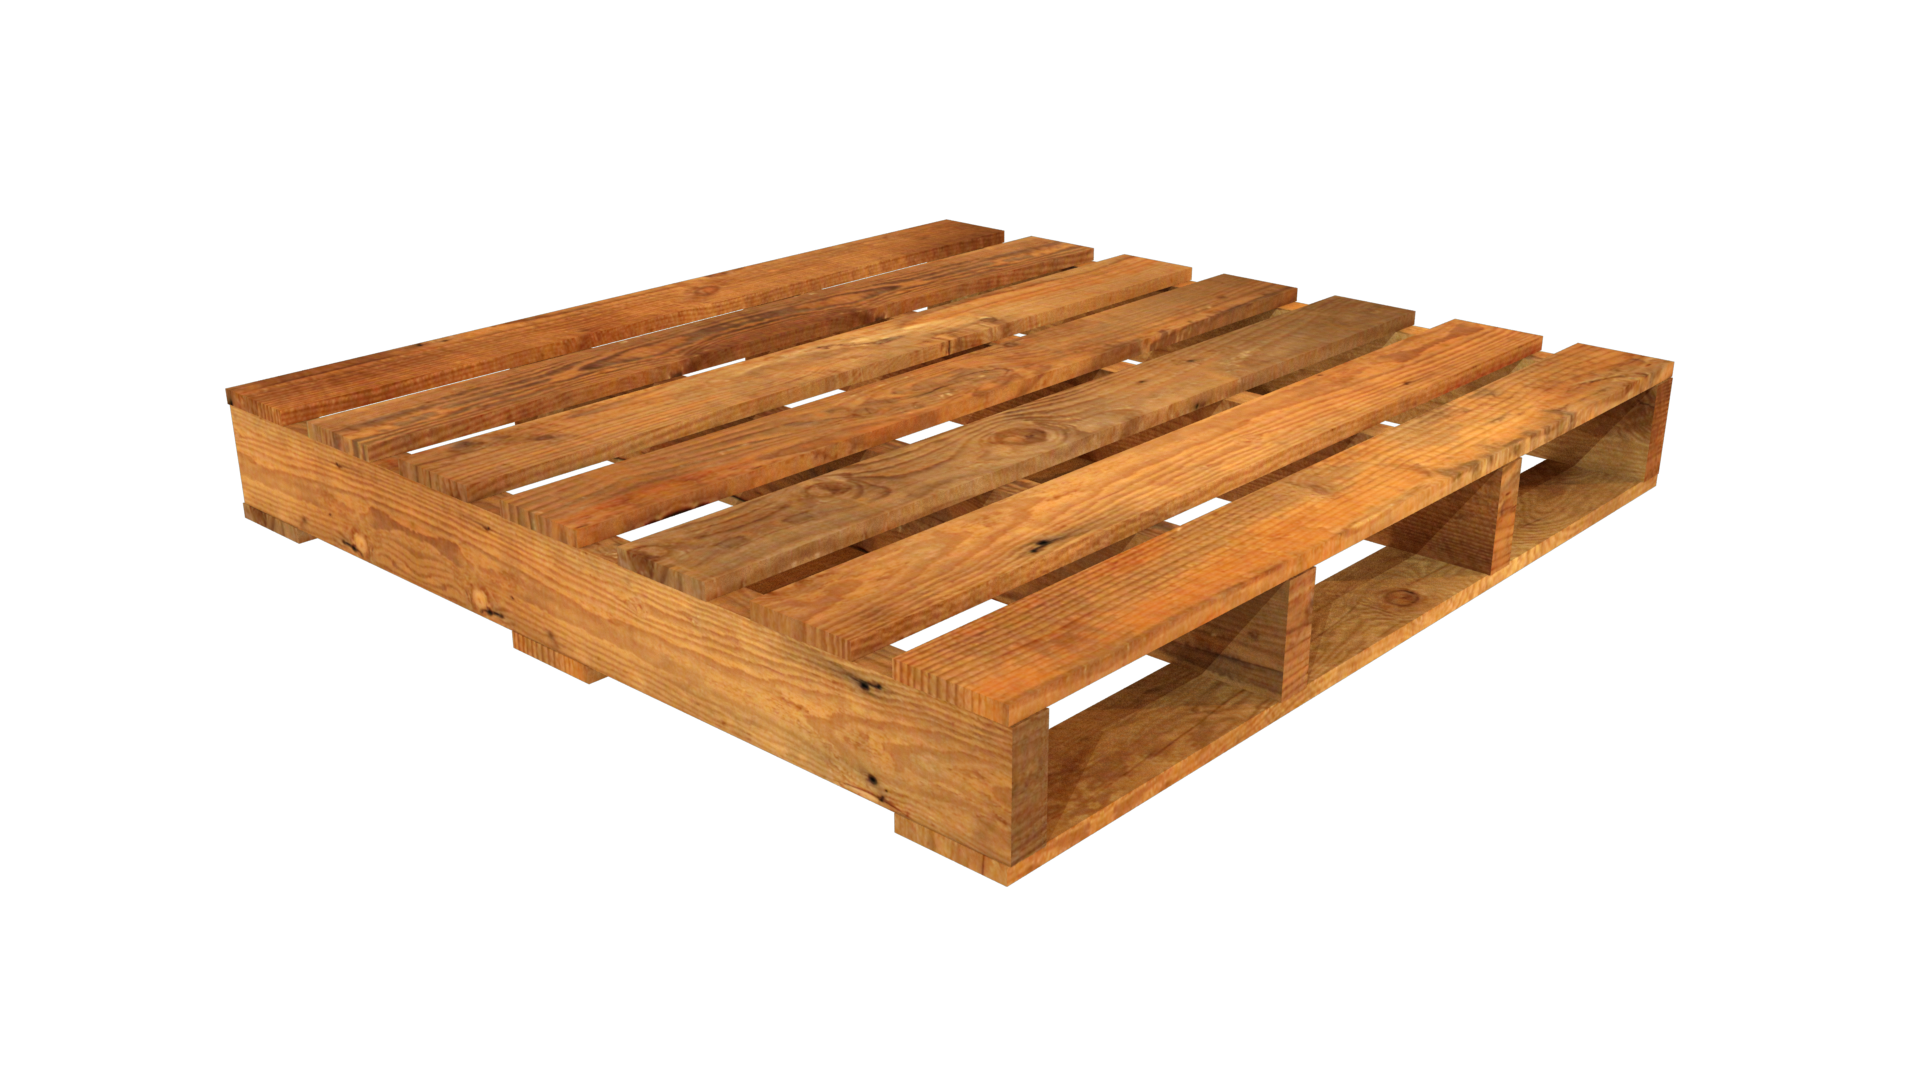 Wooden Pallet Types Malaysia   Two Way Four Way Wooden Pallet